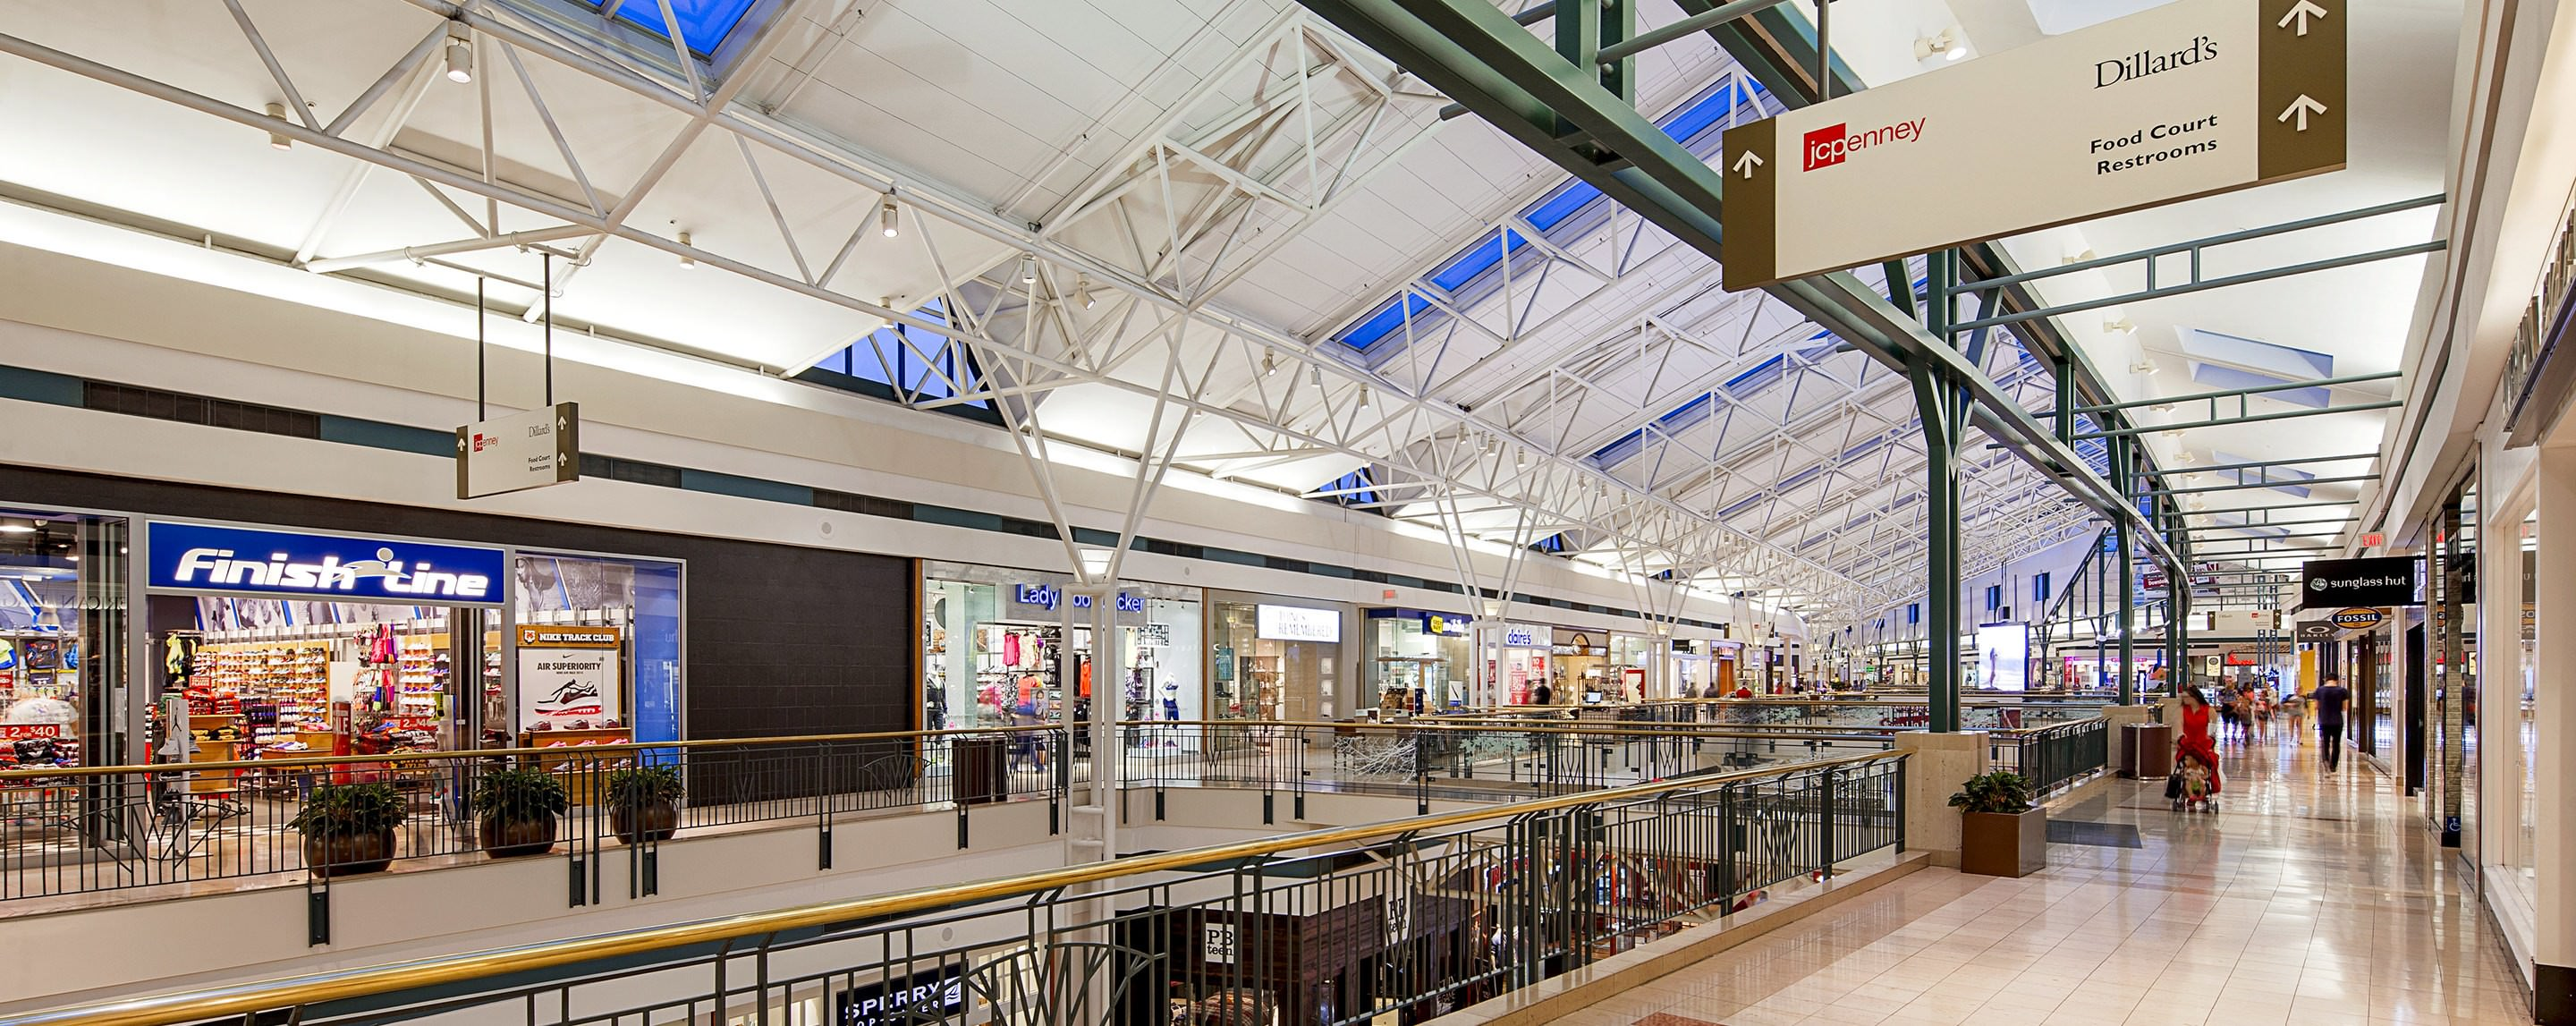 Stores such as Fossil, JCPenney, Dillard's, and Sunglass Hut are located in a shopping center with two levels.